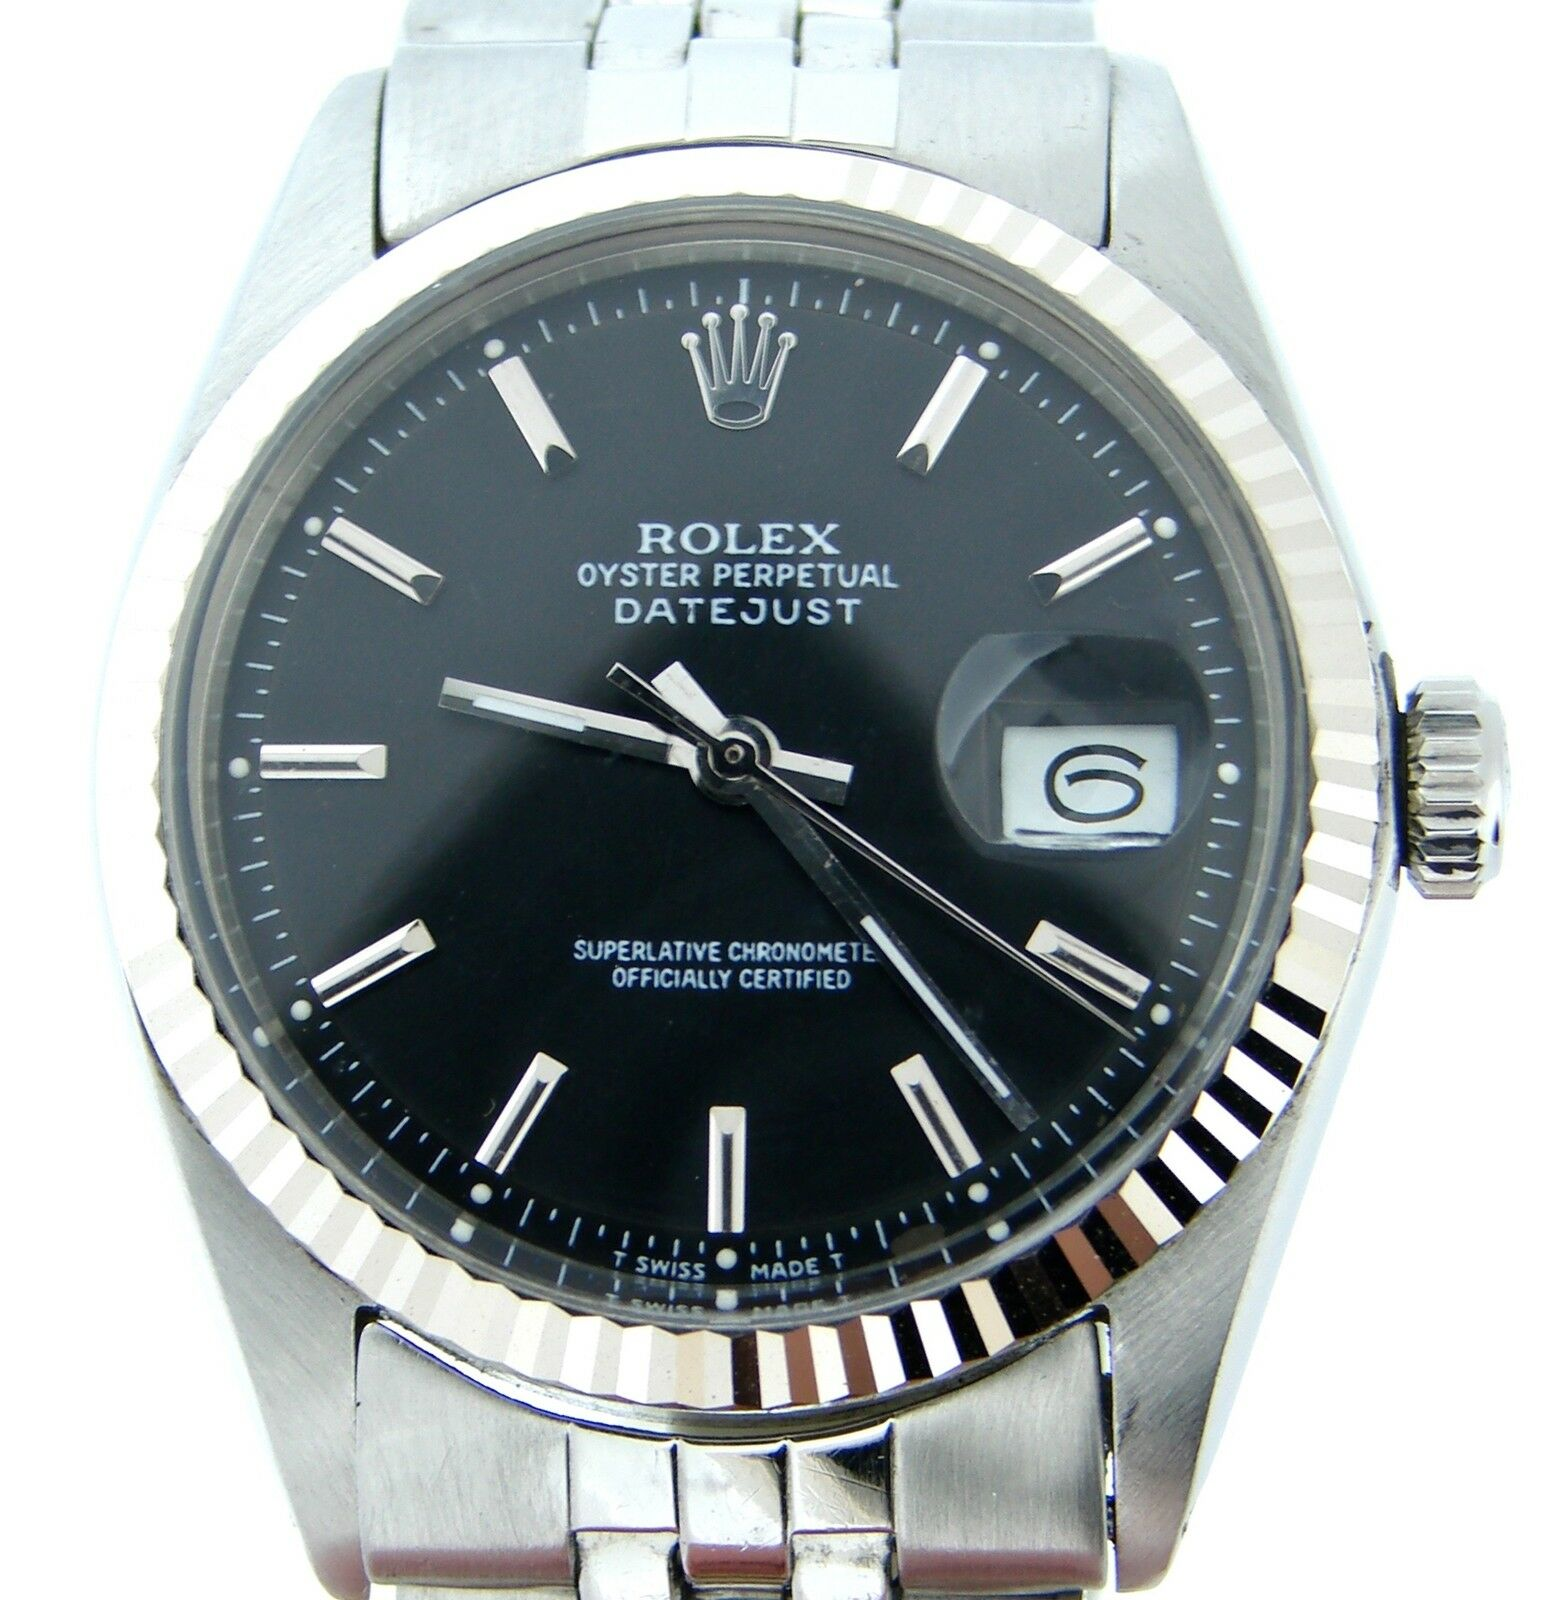 $2969.98 - Mens Rolex Stainless Steel/18K White Gold Datejust Black w/Jubilee Band 1601